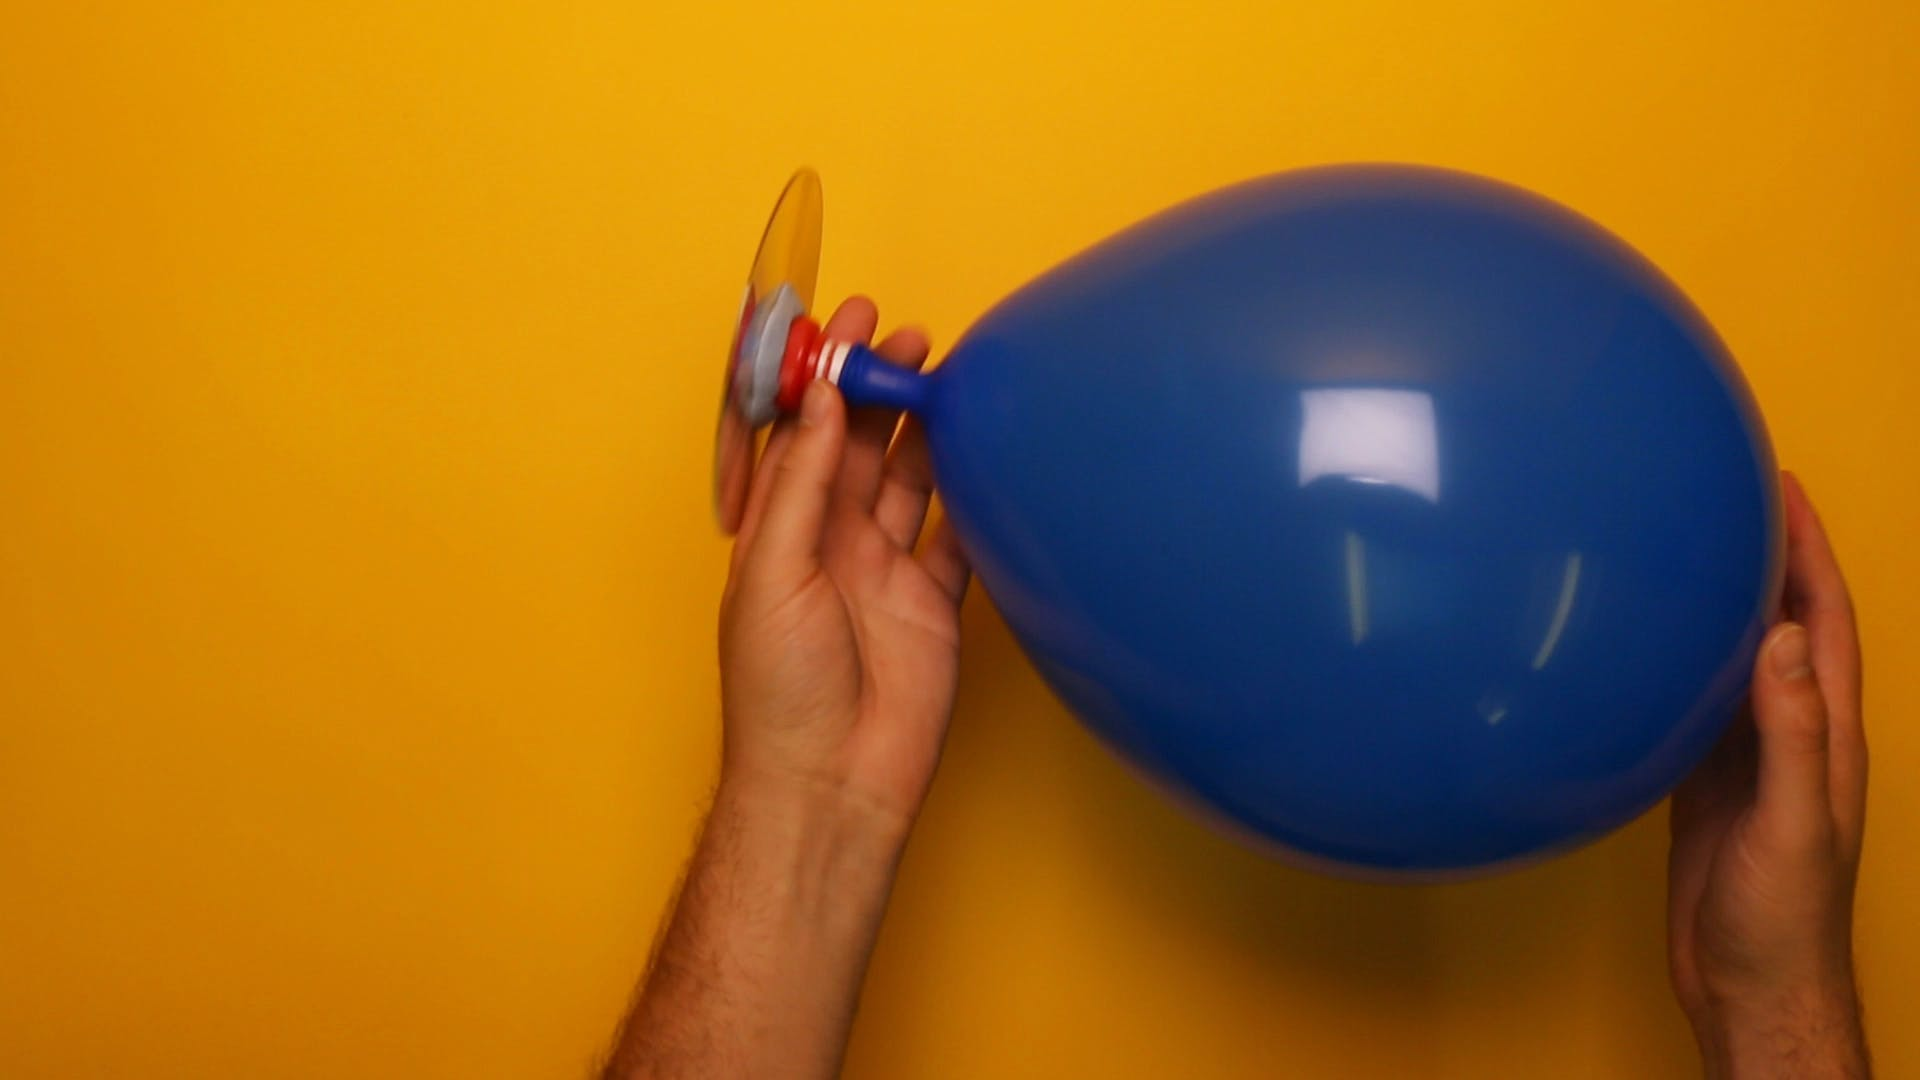 Inflate the balloon by blowing through the hole in the CD. Close the sports cap to keep the air in!